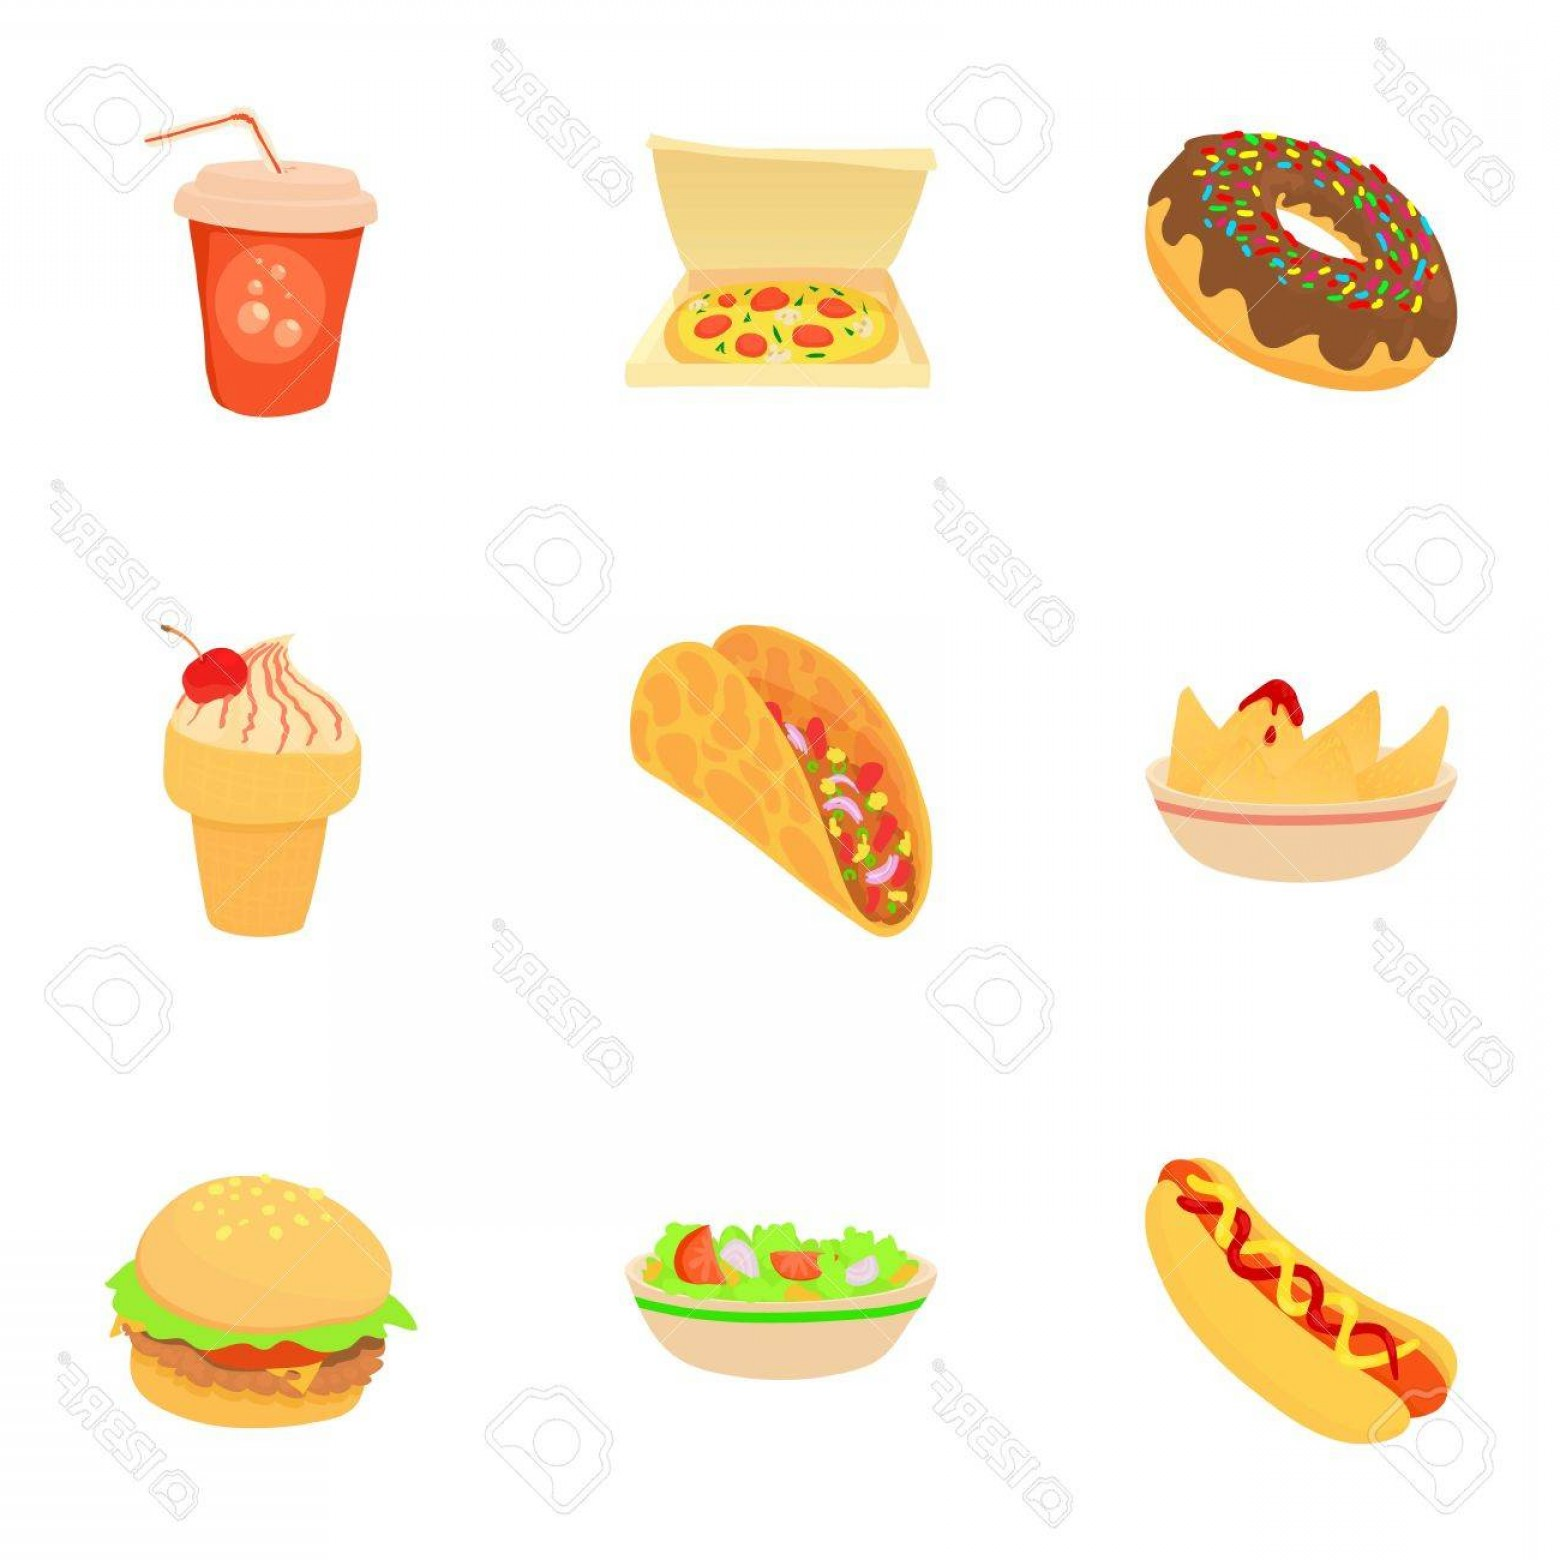 Snack Vector: Photostock Vector Snack Icons Set Cartoon Set Of Snack Vector Icons For Web Isolated On White Background